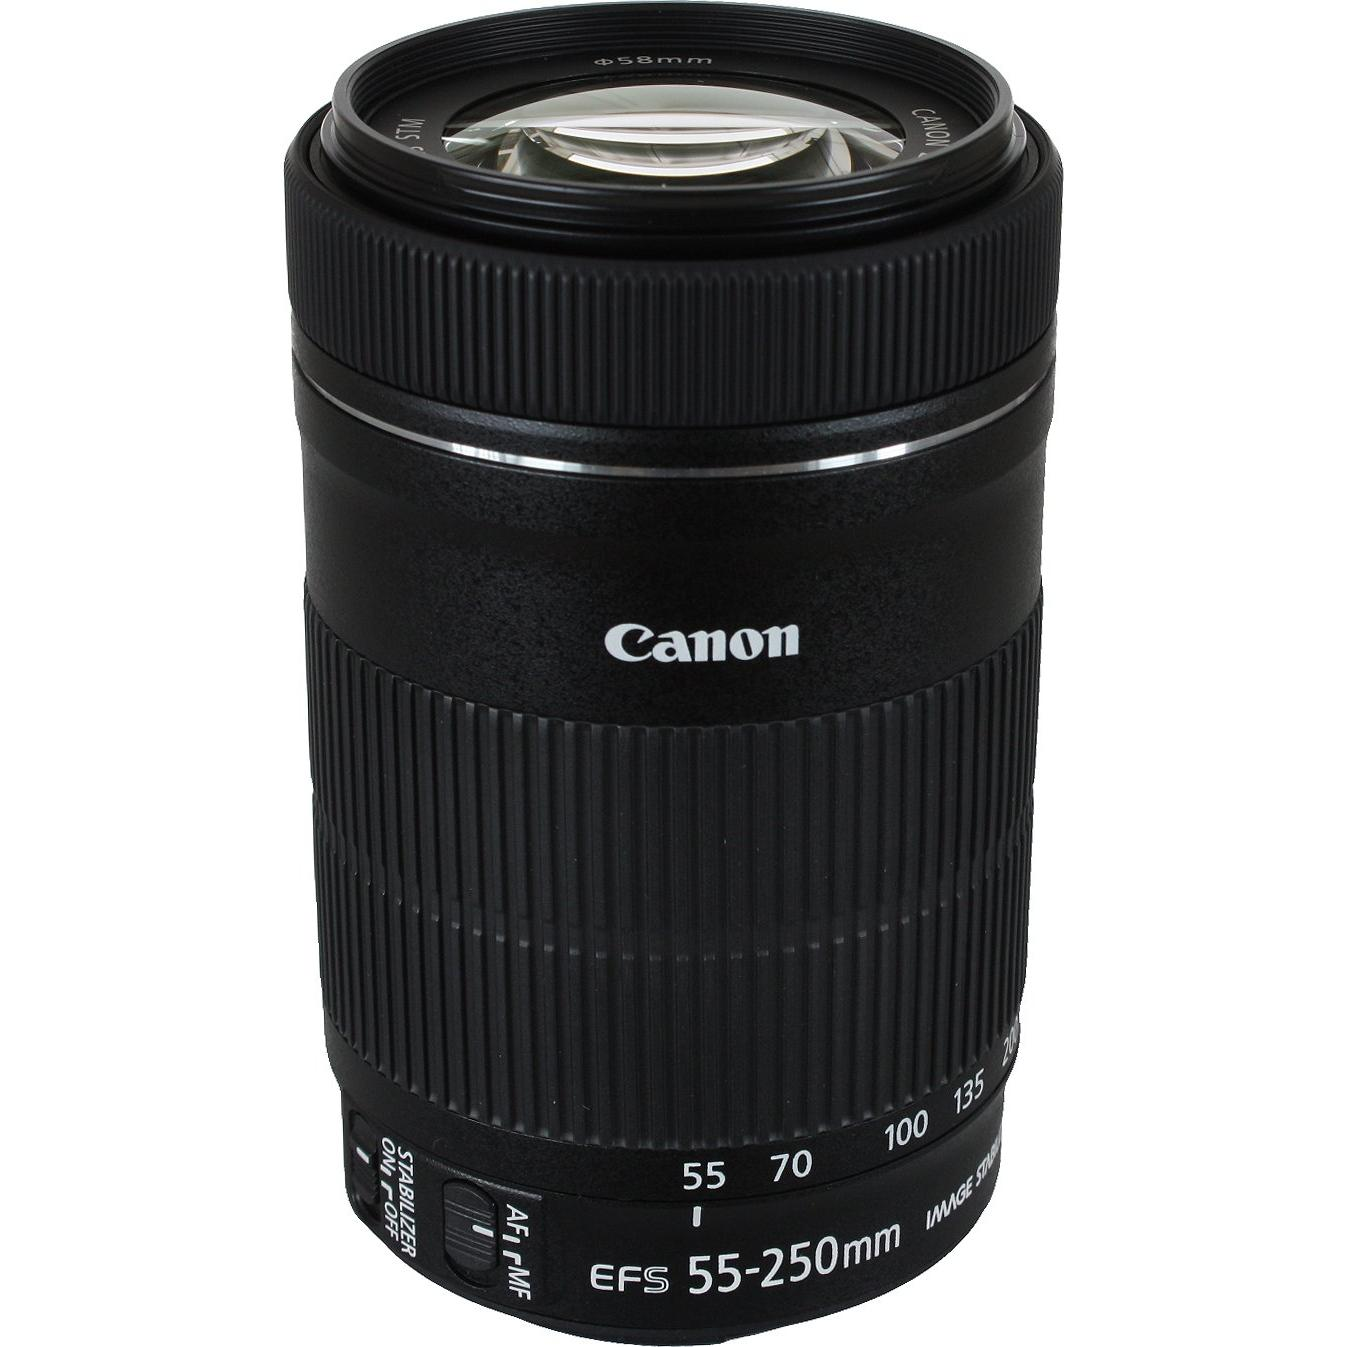 Objectif Canon EF-S 55-250mm 1:4-5.6 IS STM